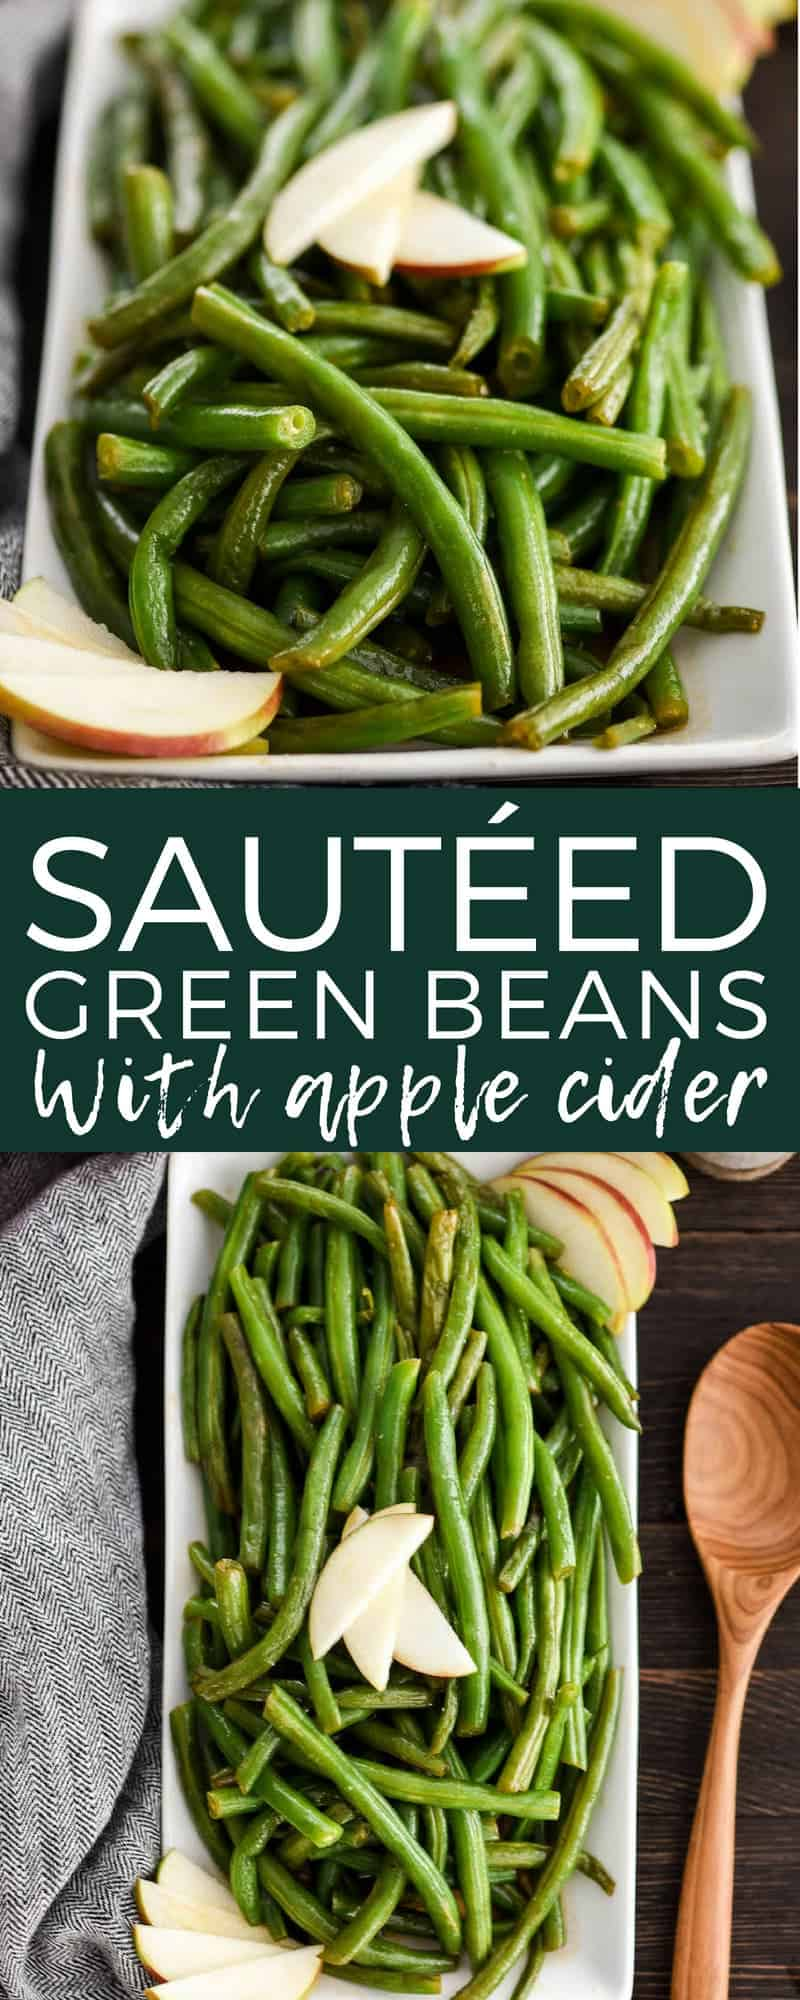 This Sautéed Green Beans Recipe with Apple Cider is a delicious Thanksgiving side dish! Made with only 5 ingredients, they're a healthy and easy holiday favorite that everyone will love! Gluten-free, dairy-free, vegan, paleo-friendly! #greenbeans #healthyrecipe #paleo #vegan #glutenfree #dairyfree #healthythanksgiving